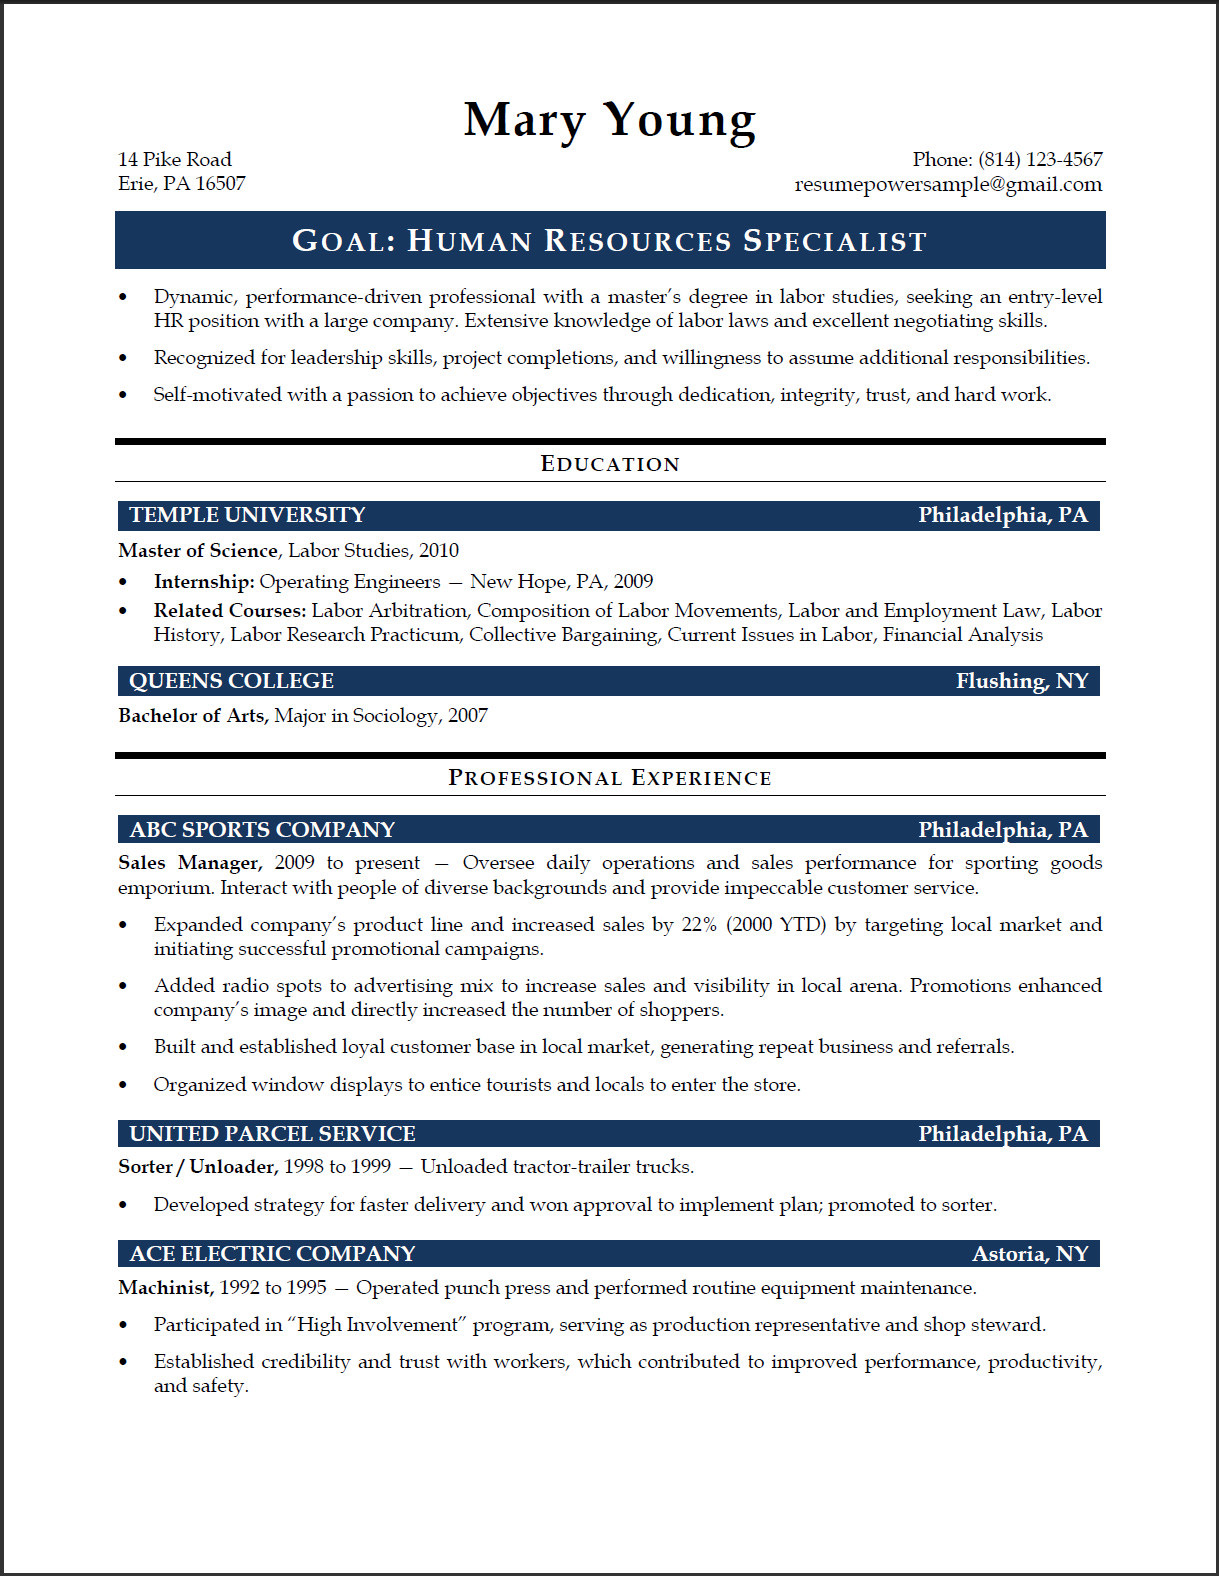 Human Resources Resume Example Hr Specialist Sample Resume Resumepower